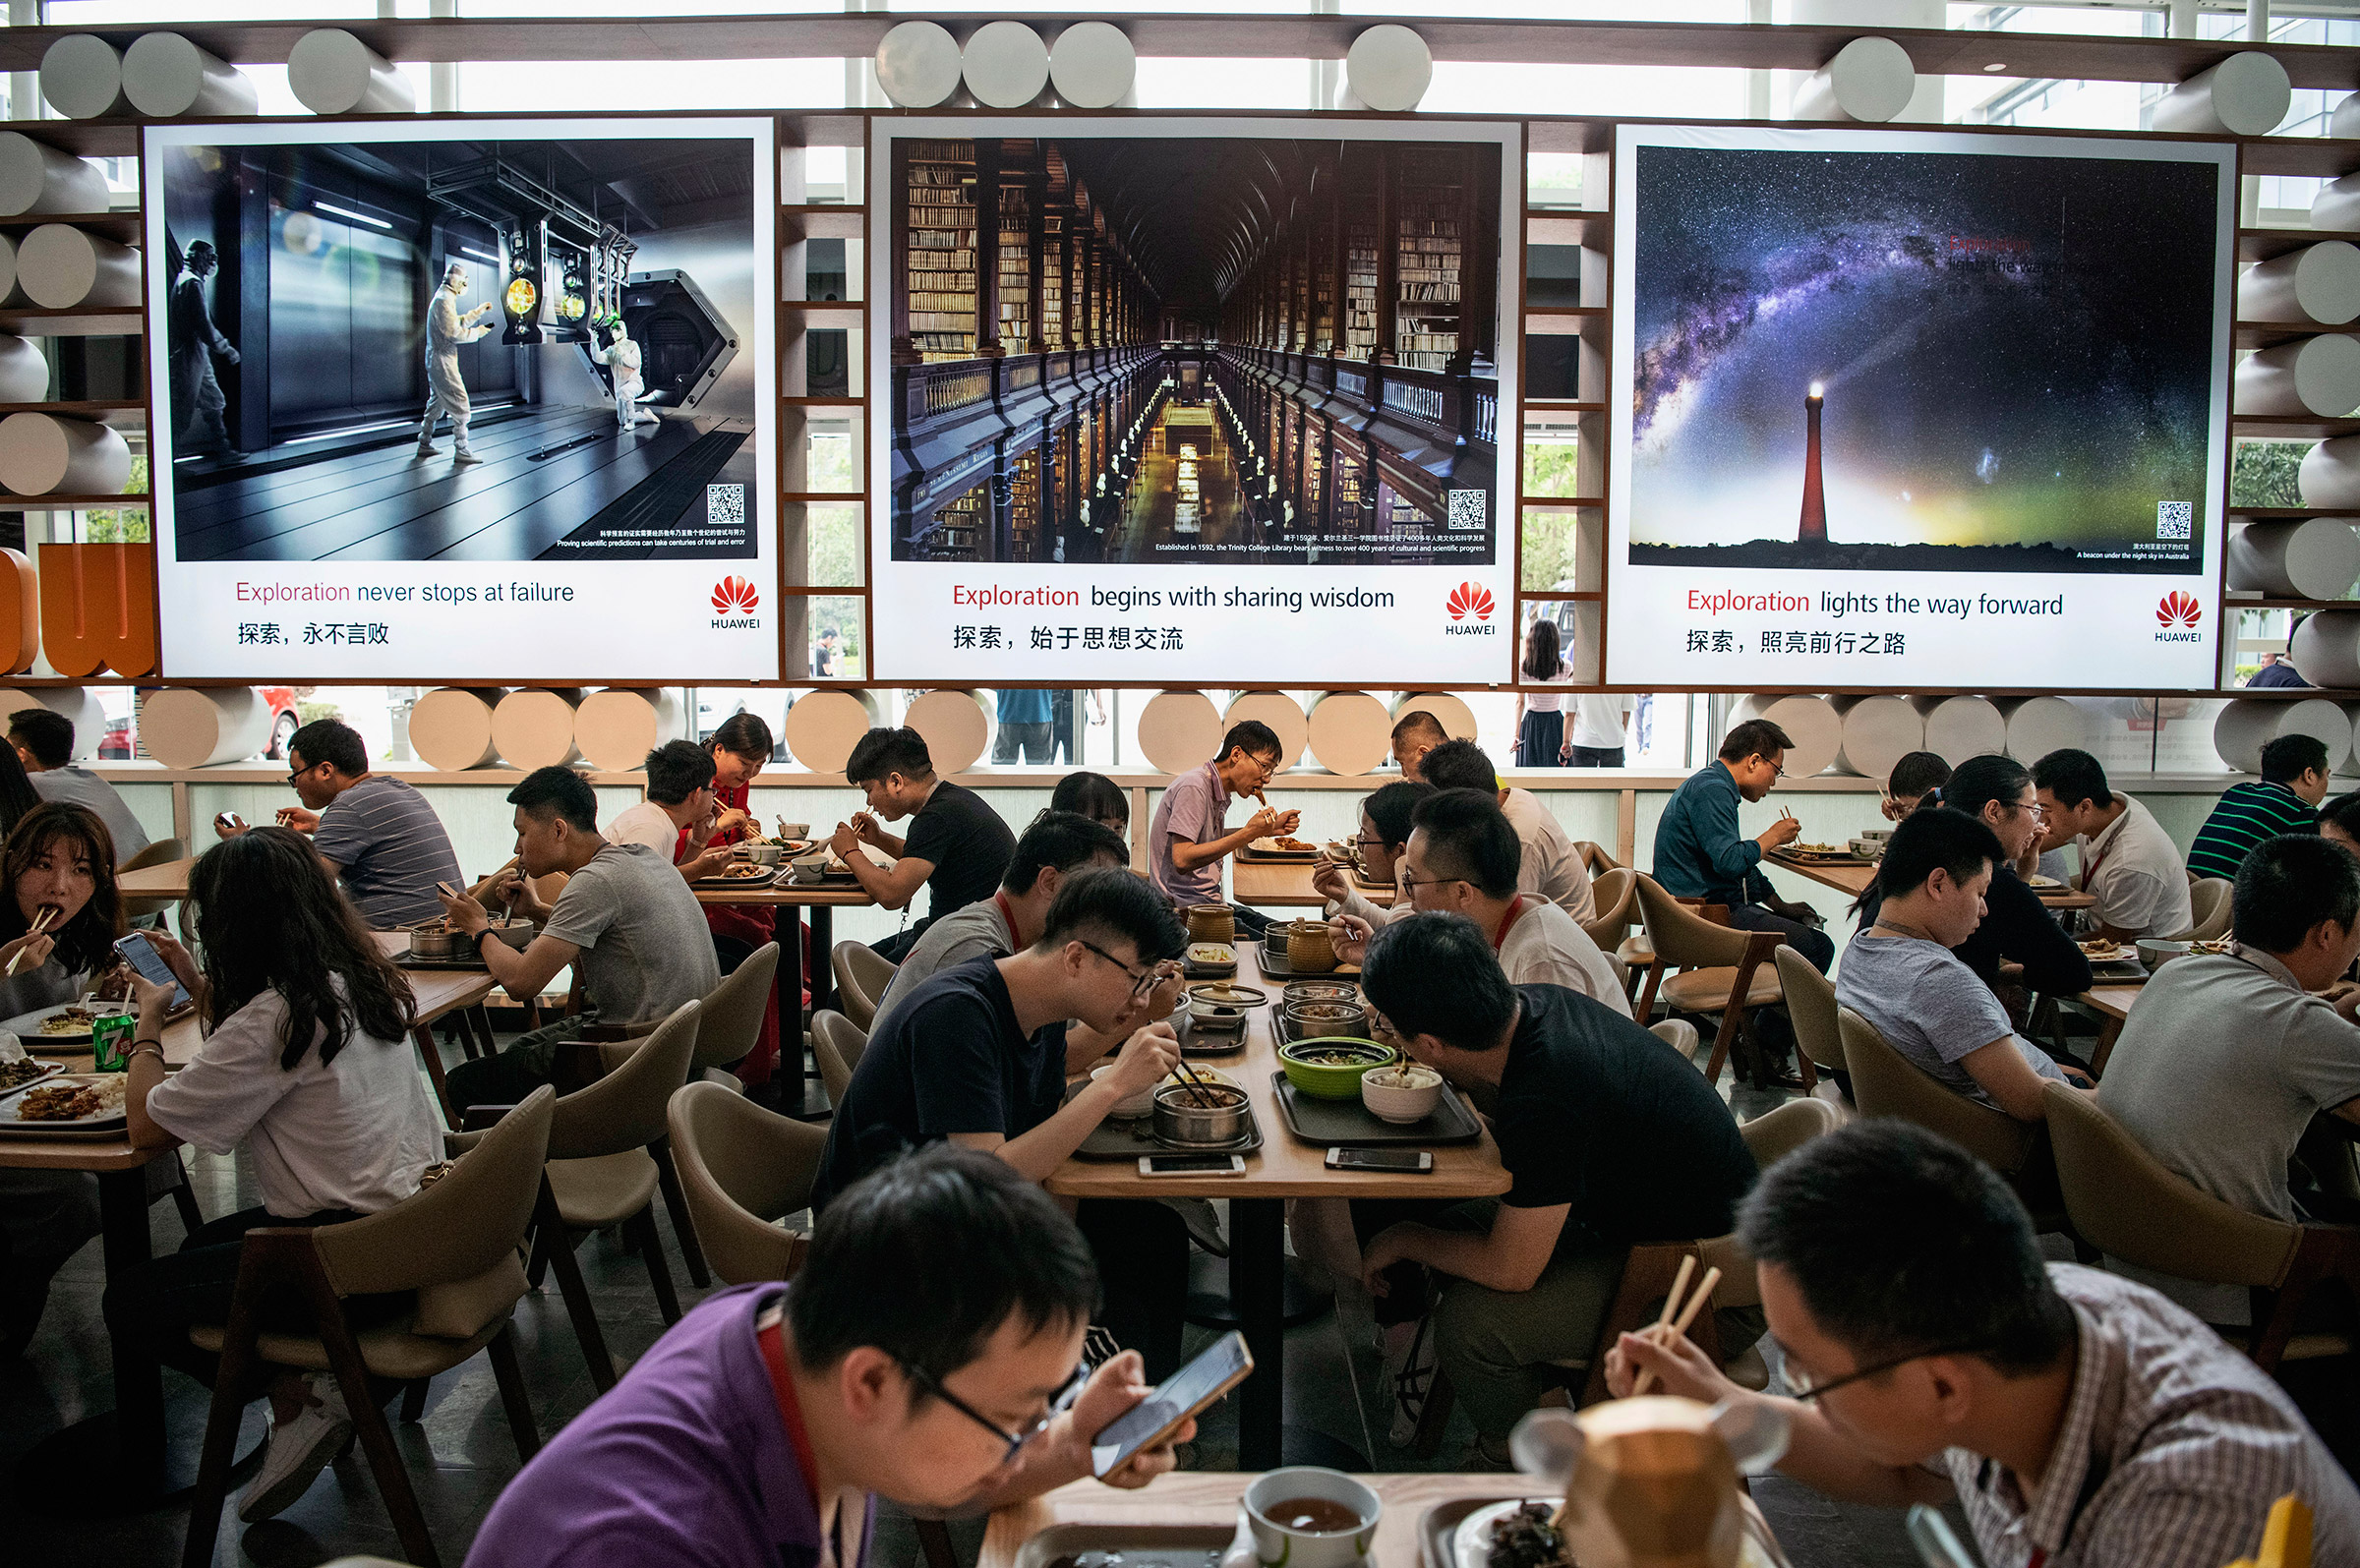 Workers eating lunch at the Huawei campus in Shenzhen, China